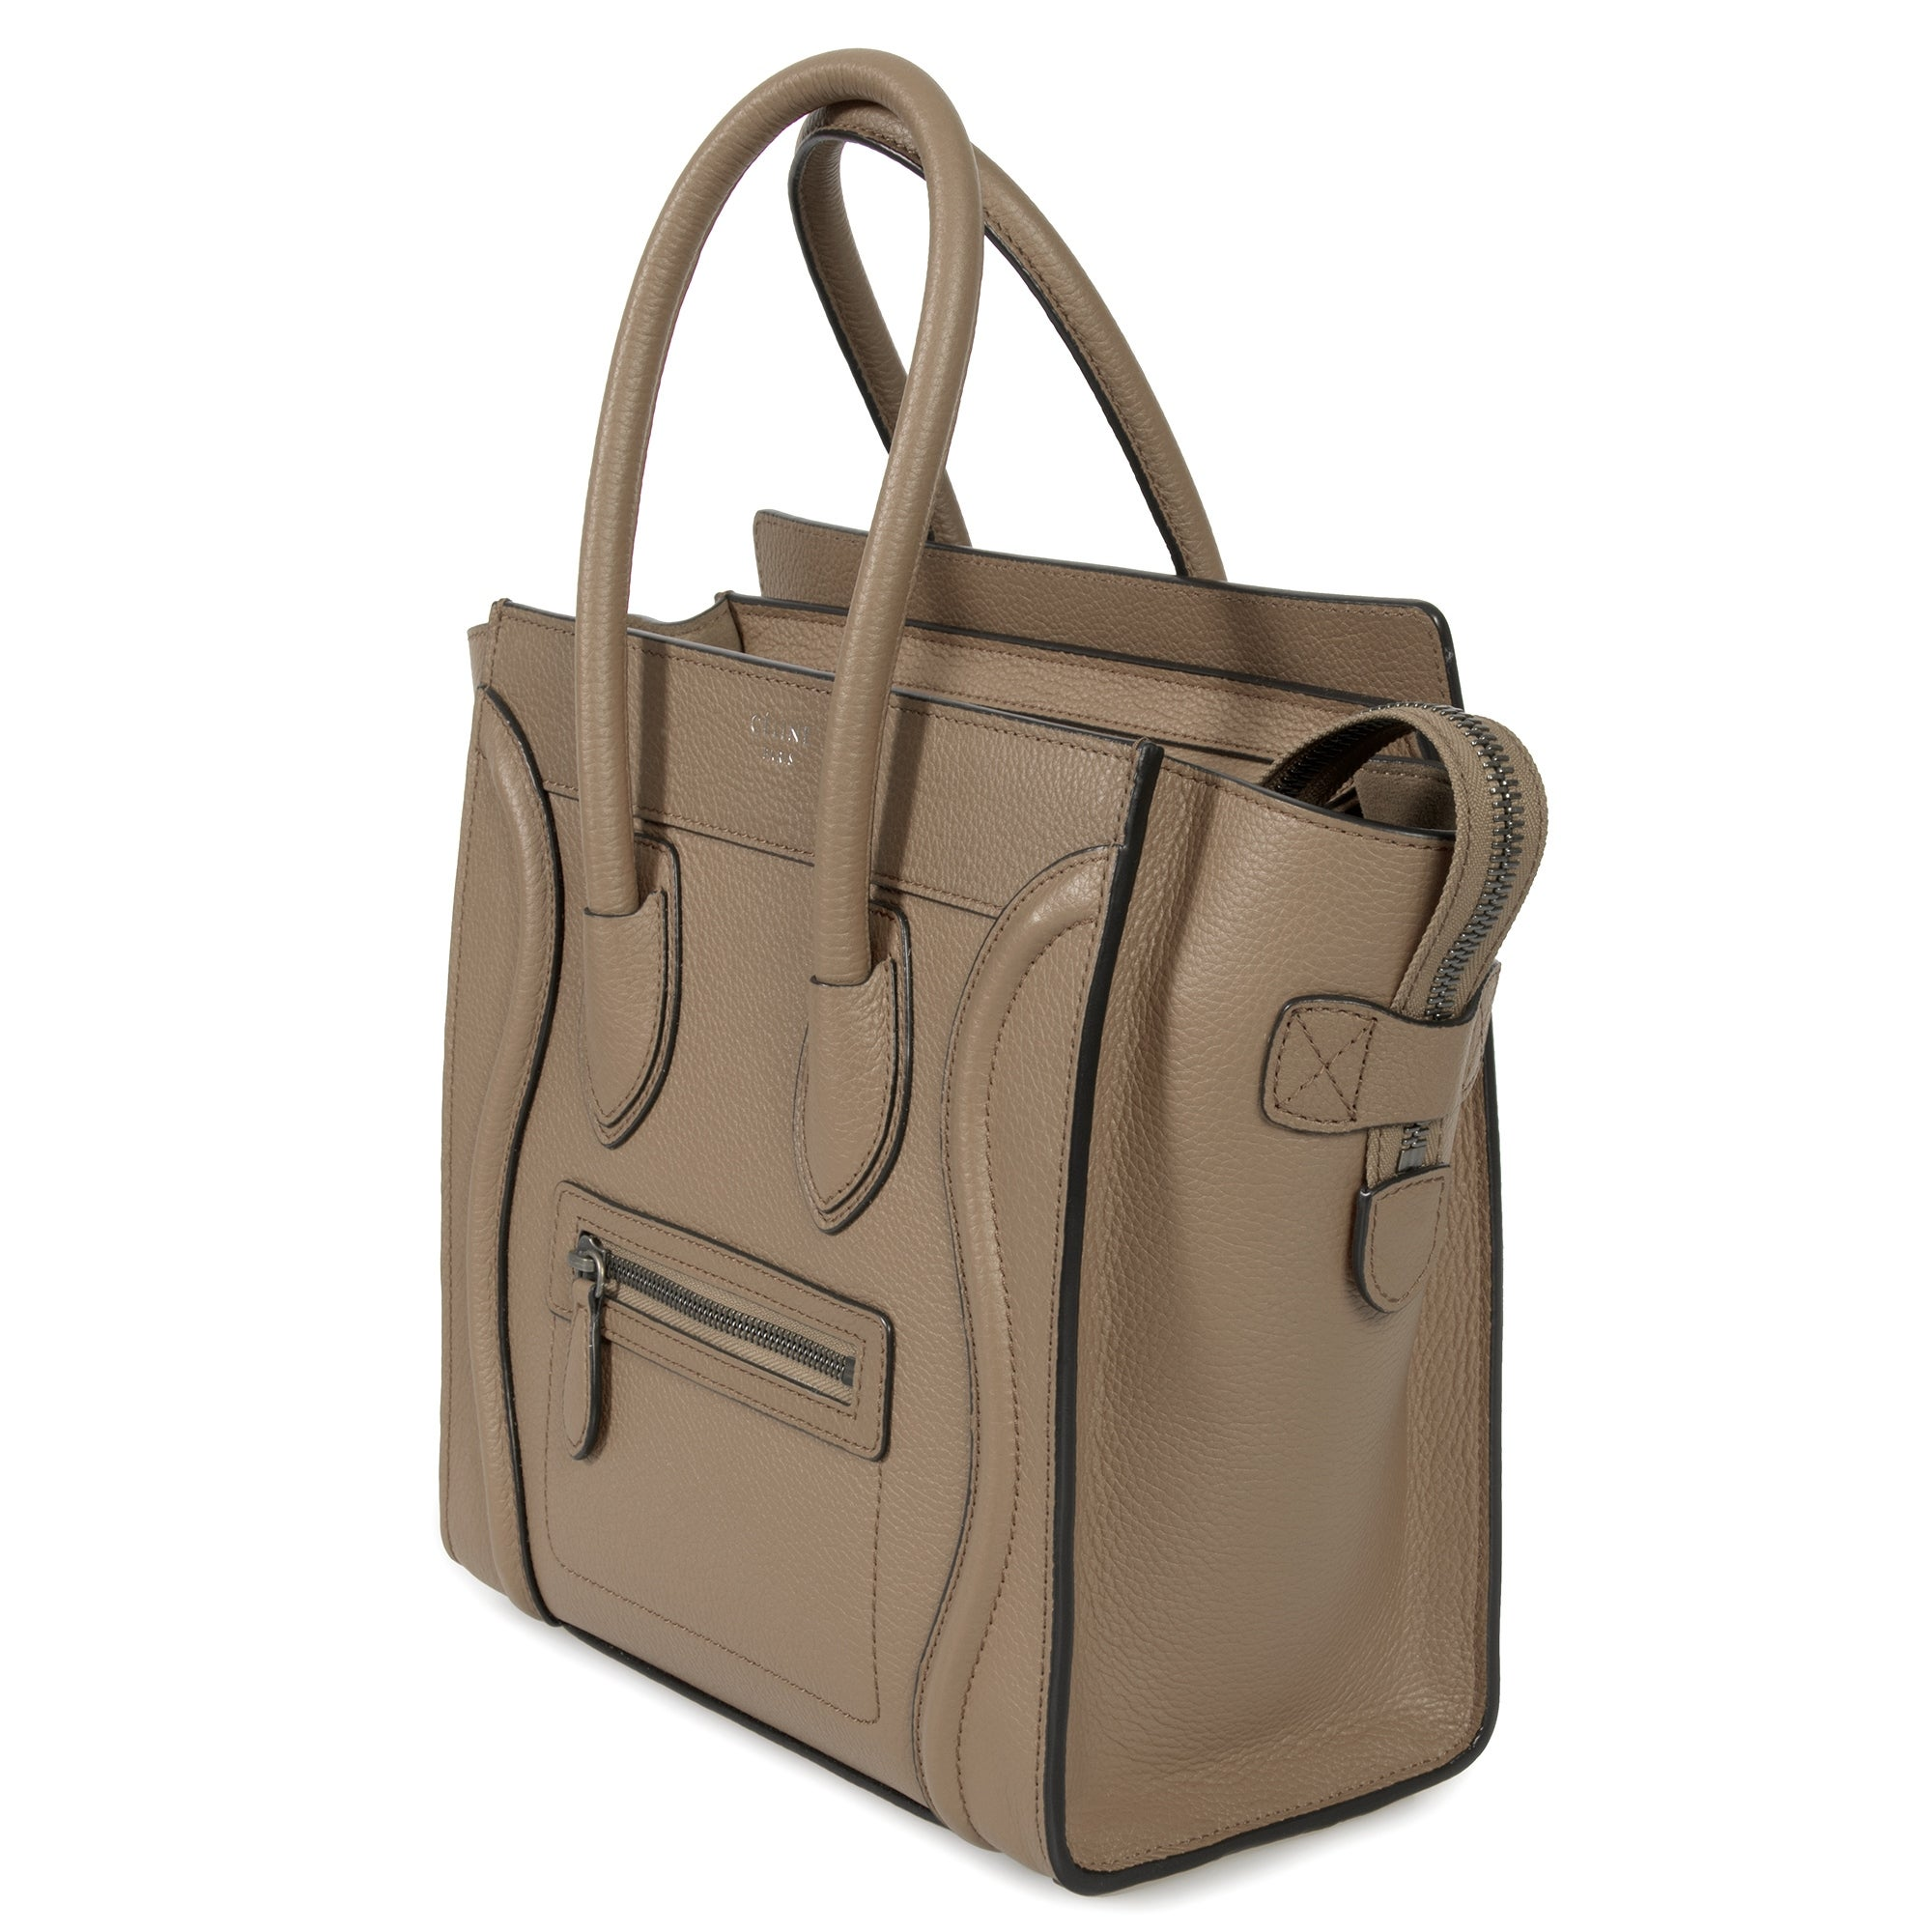 42f5999a496 Shop Celine Micro Luggage Tote Bag in Dune Baby Drummed Calfskin Leather -  Free Shipping Today - Overstock.com - 23085449